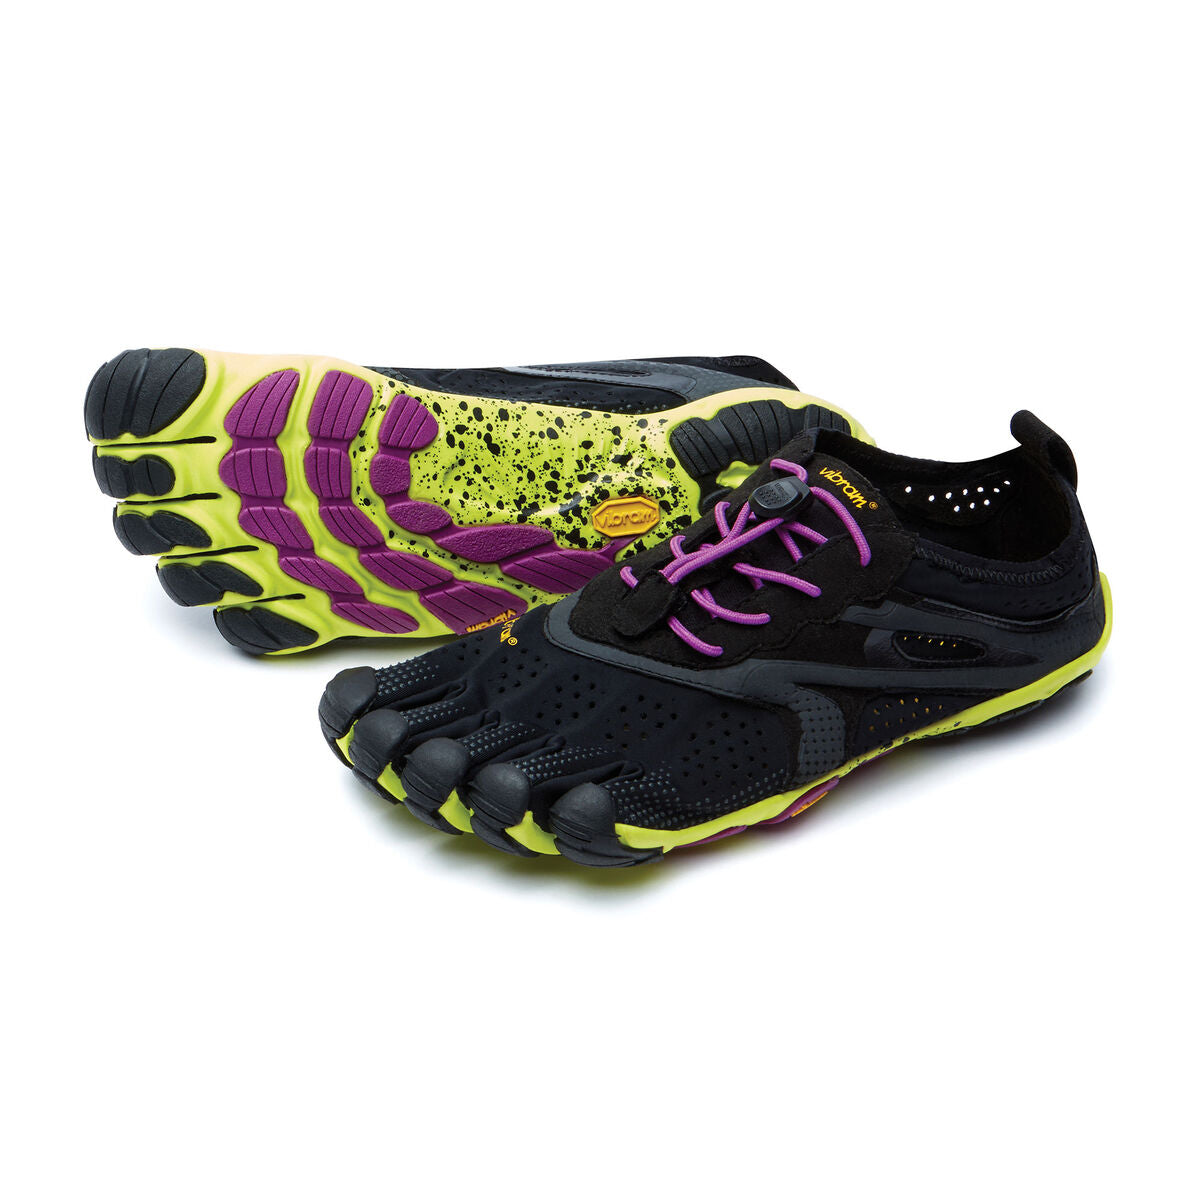 Women's Vibram Five Fingers V-Run Running Shoe in Black/Yellow/Purple from the front